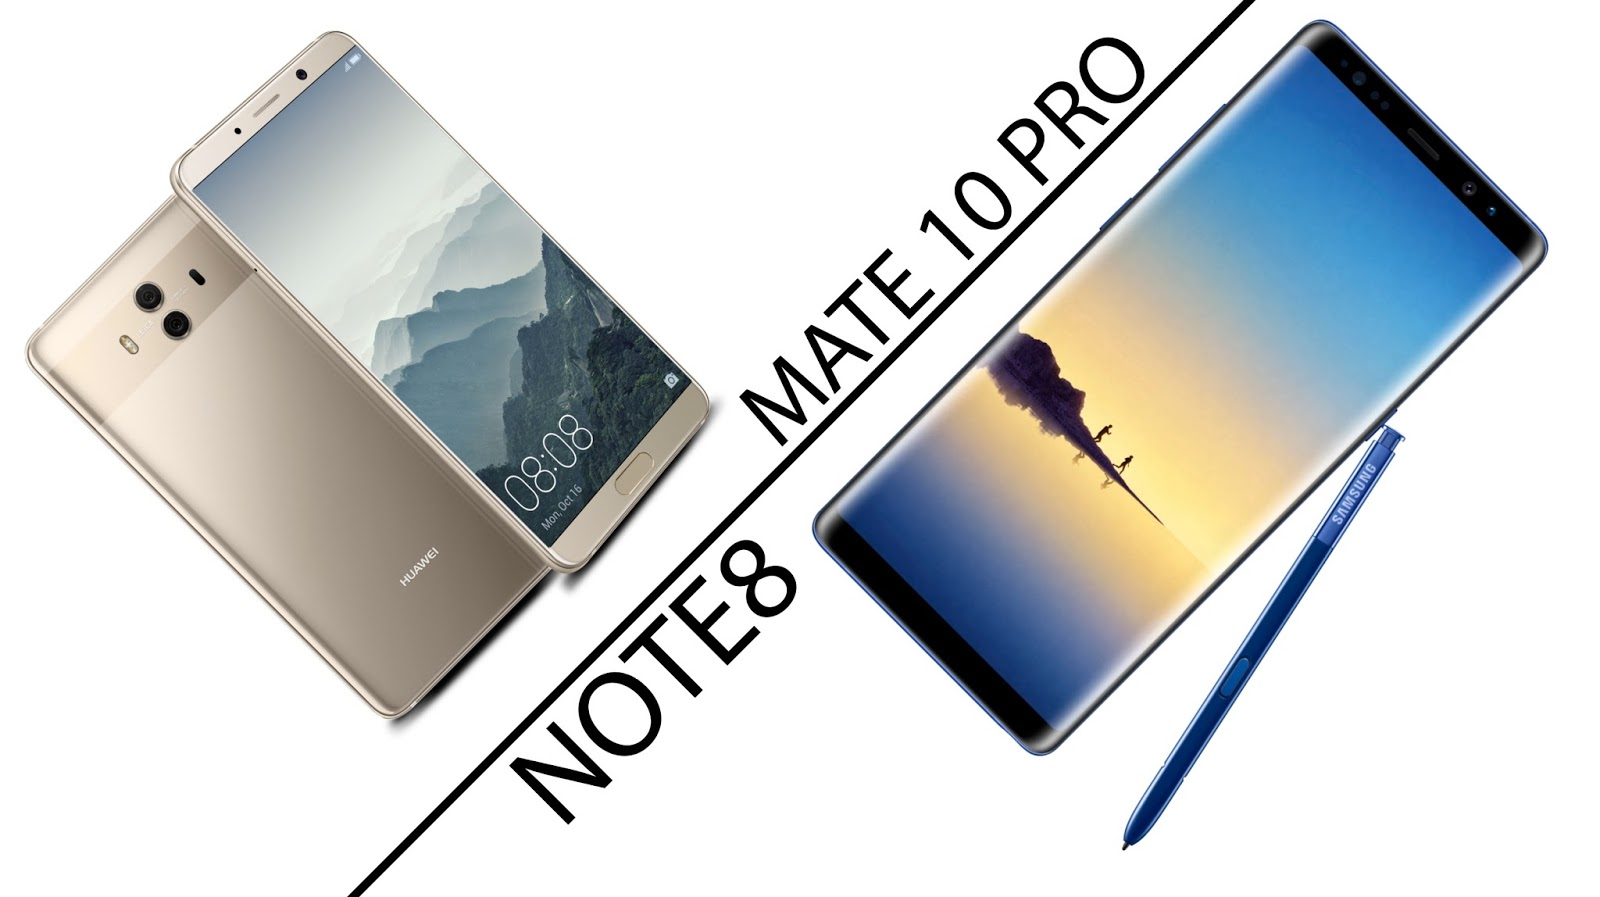 huawei mate 10 pro VS samsung note 8 confronto